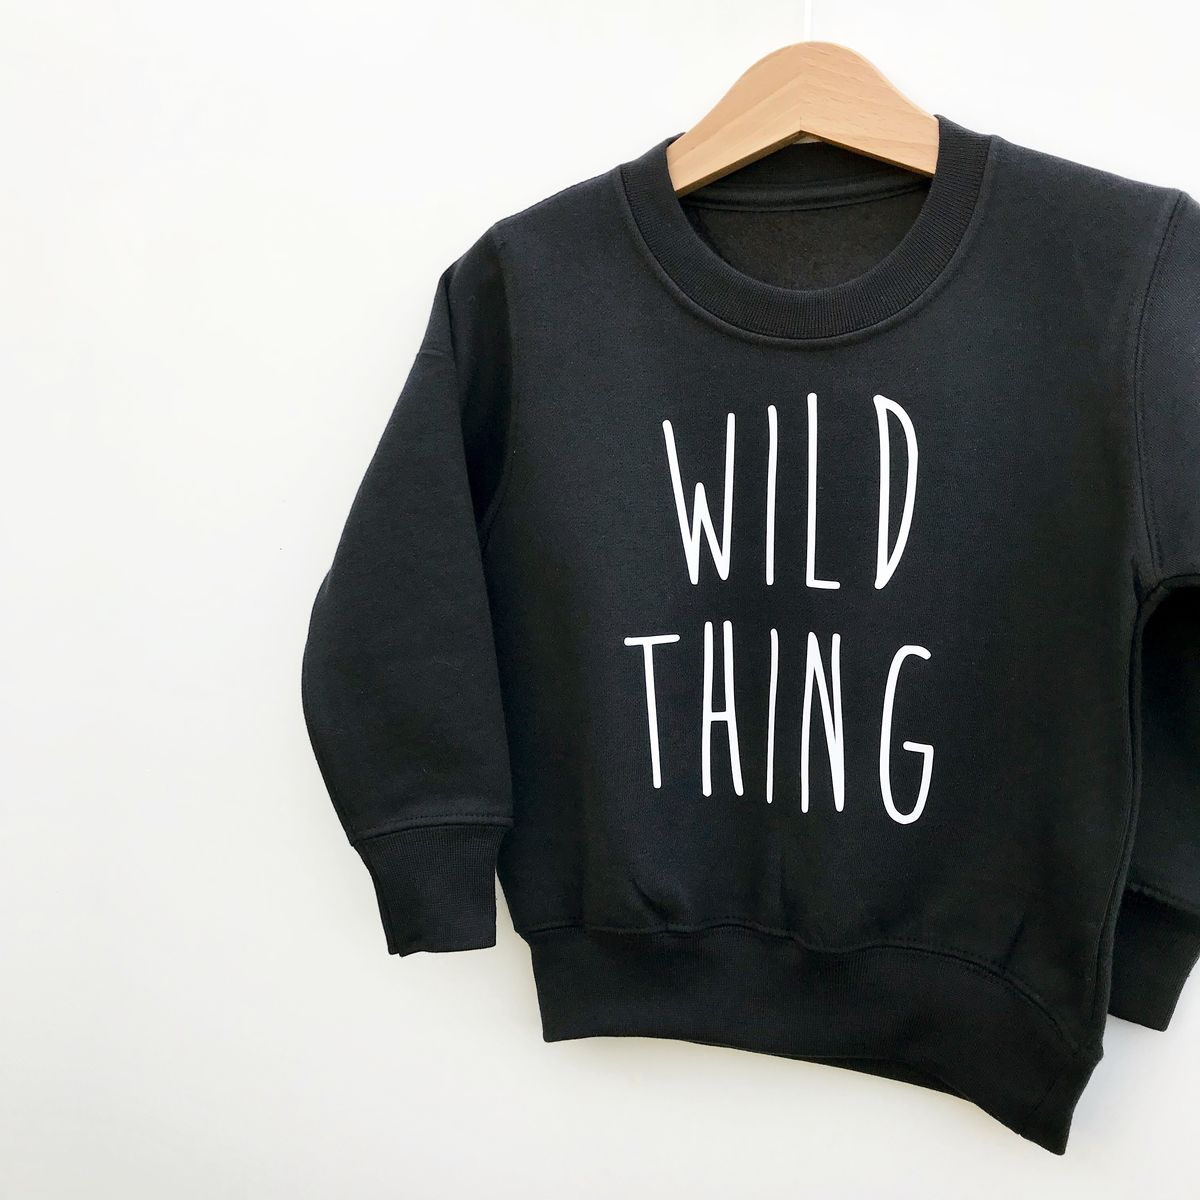 Wild Thing Sweatshirt - product images  of